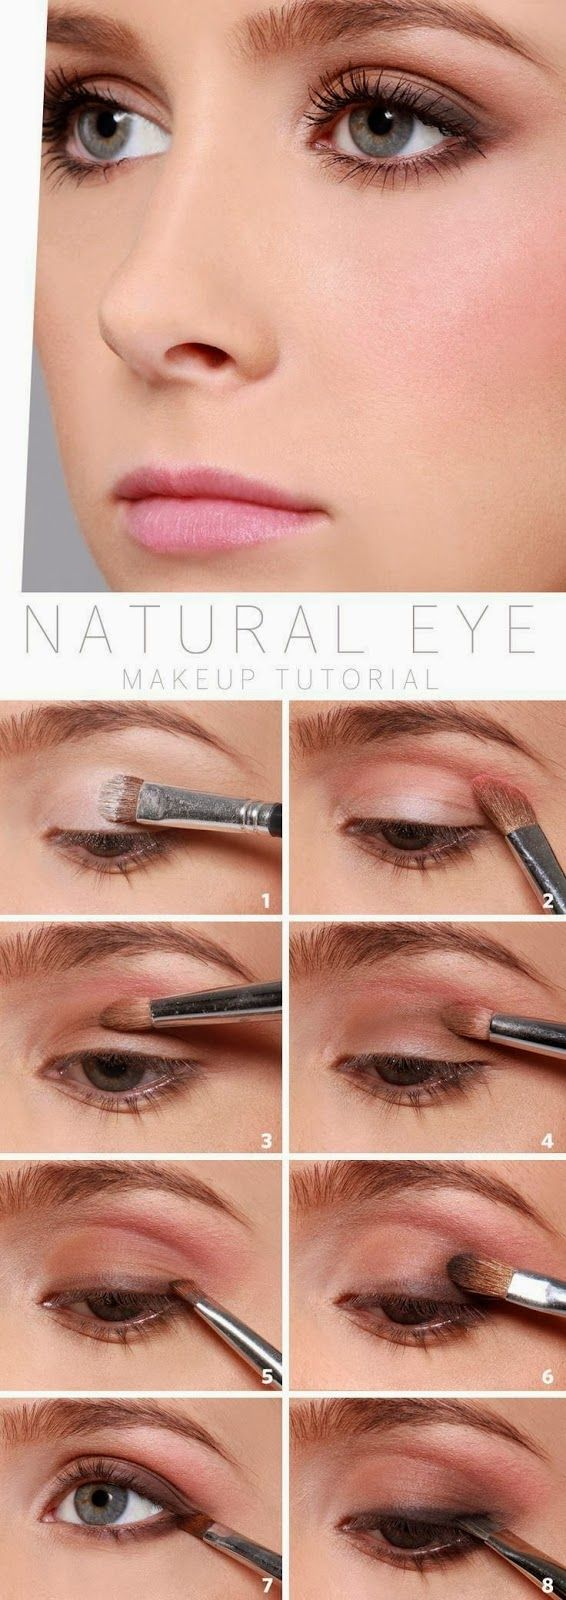 How-To: Natural Eye Makeup Tutorial homecoming